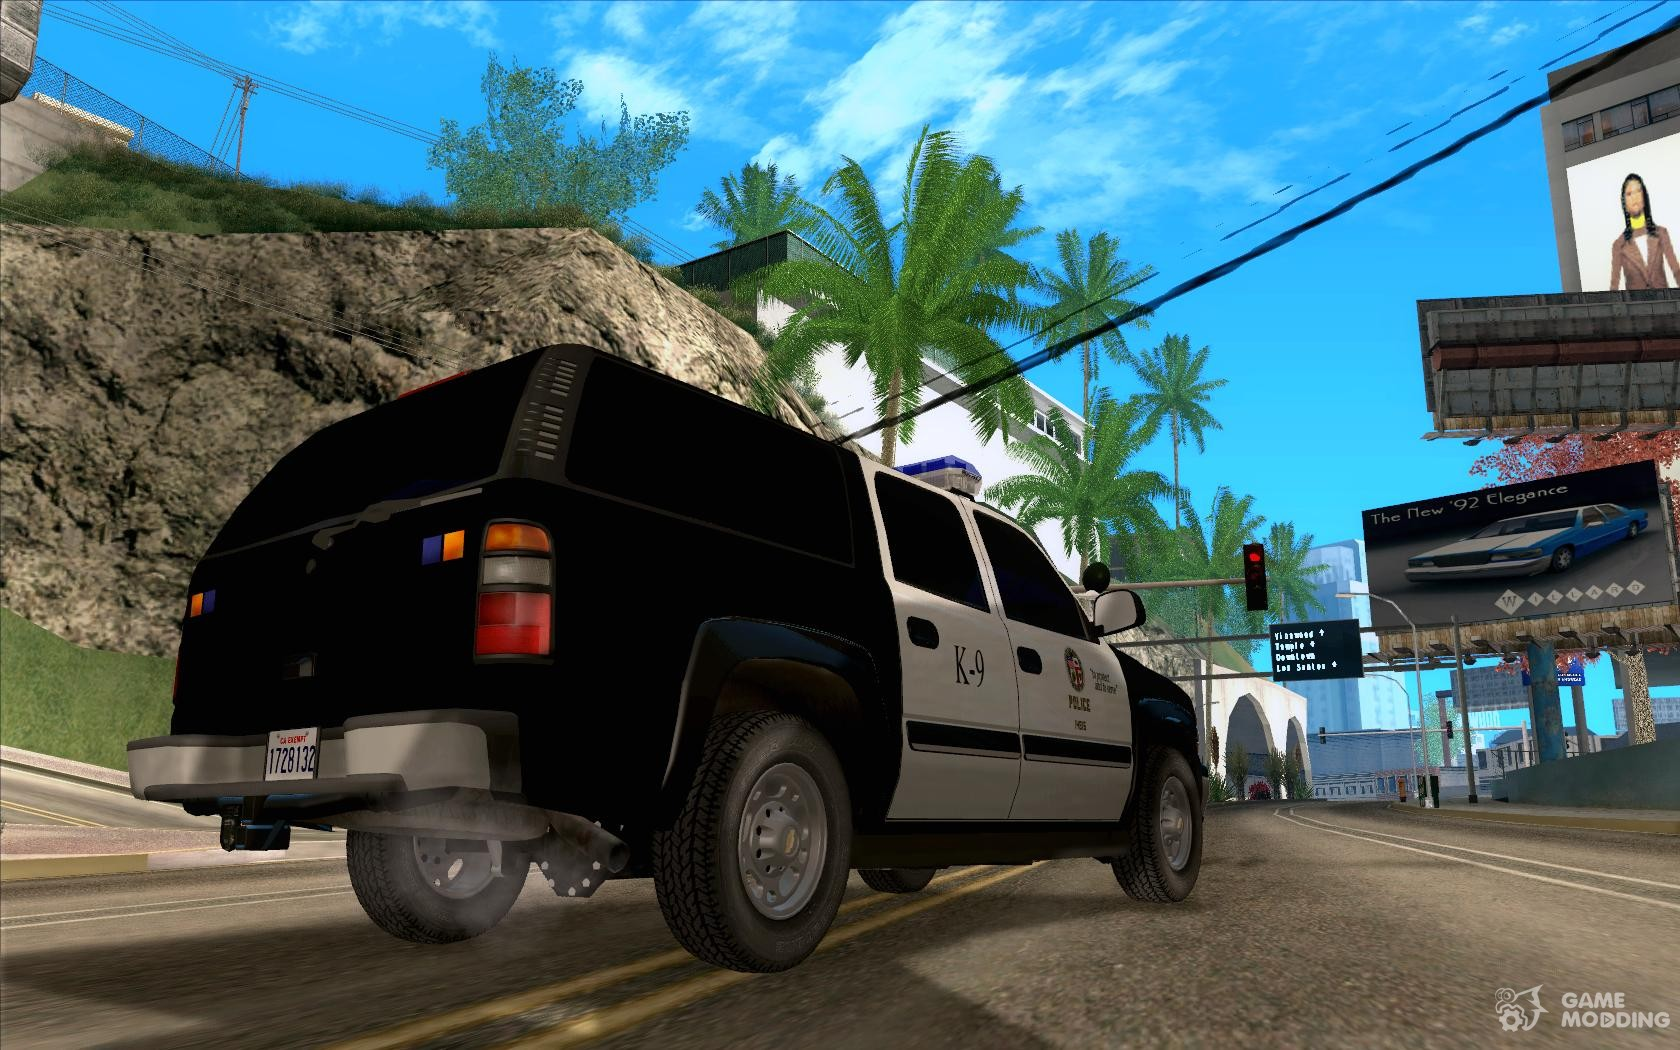 Chevrolet Suburban Lax Airport Police For Gta San Andreas: Chevrolet Suburban Los Angeles Police For GTA San Andreas